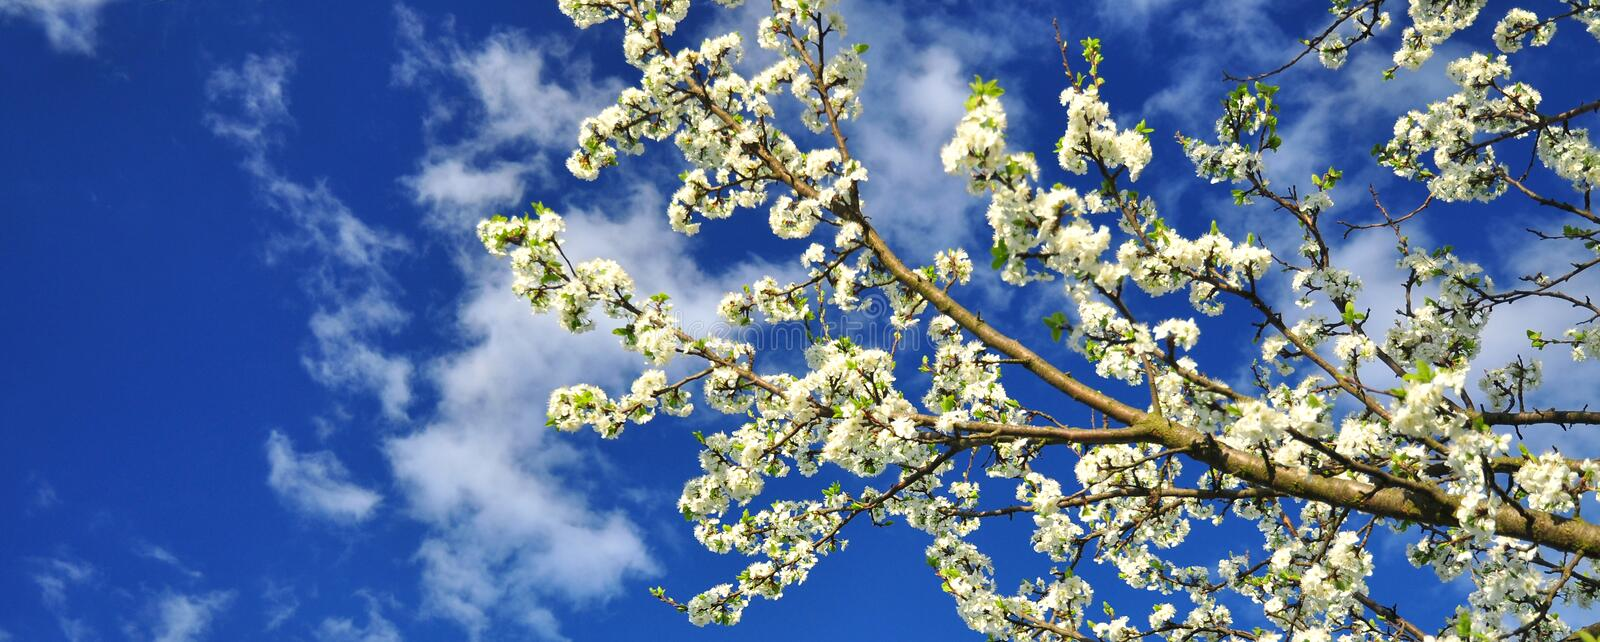 Spring springtime royalty free stock photo